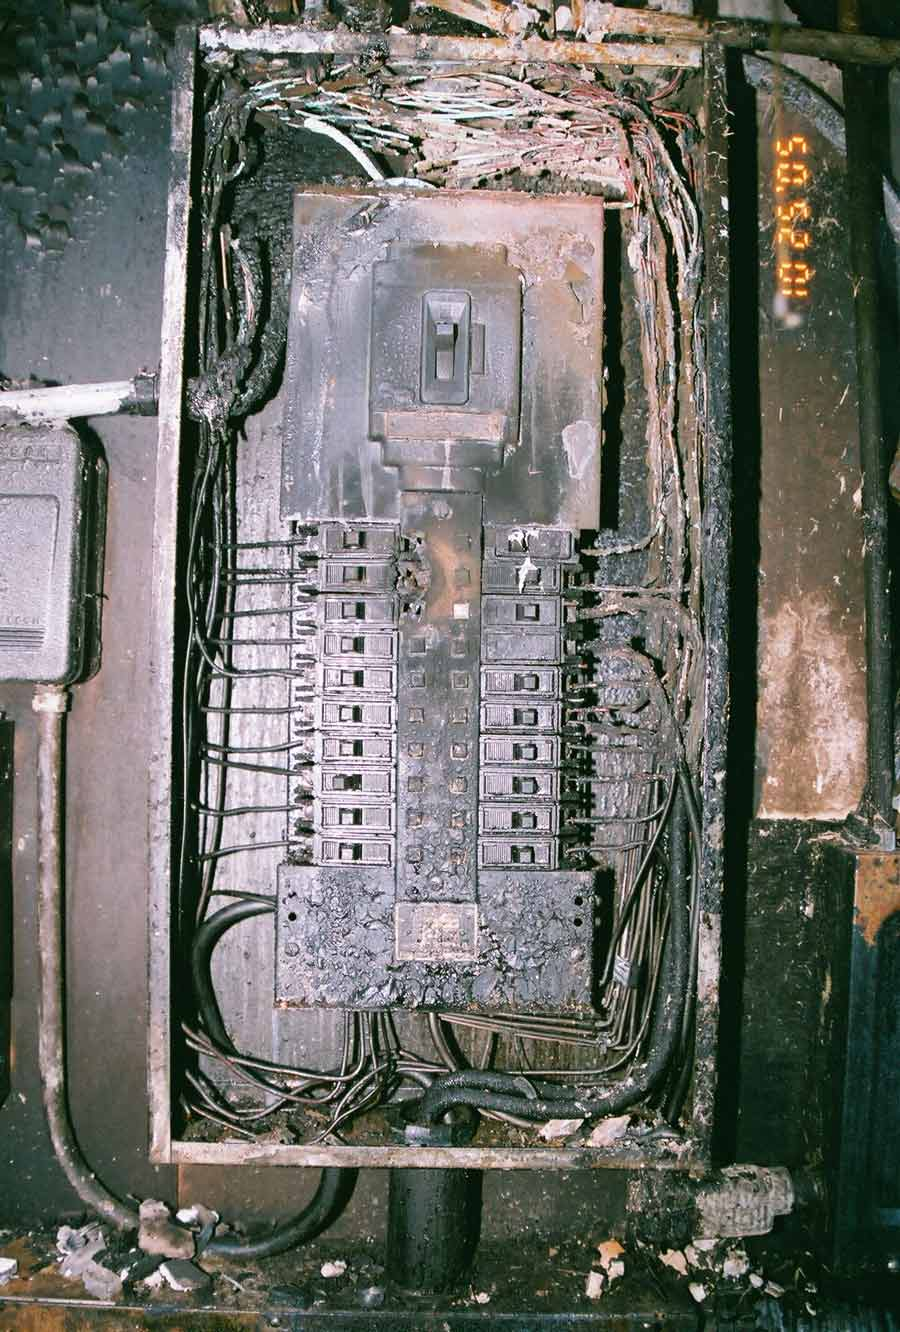 hight resolution of severe electrical arcing in panel box